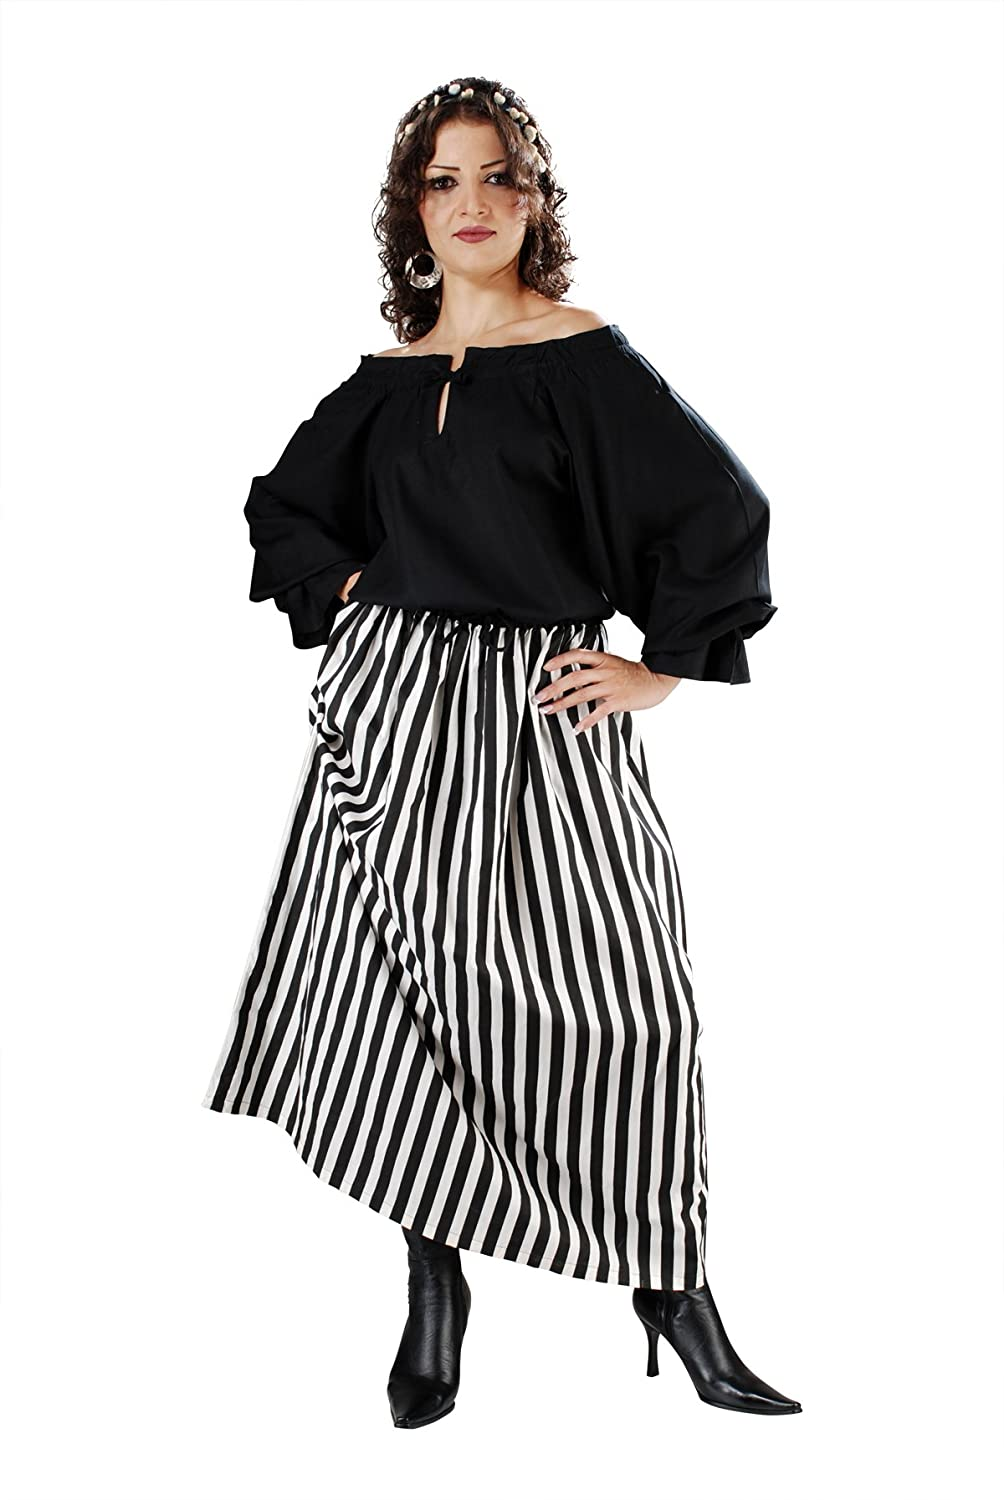 Women's Renaissance Black and White Striped Wench Skirt by Armor Venue - DeluxeAdultCostumes.com